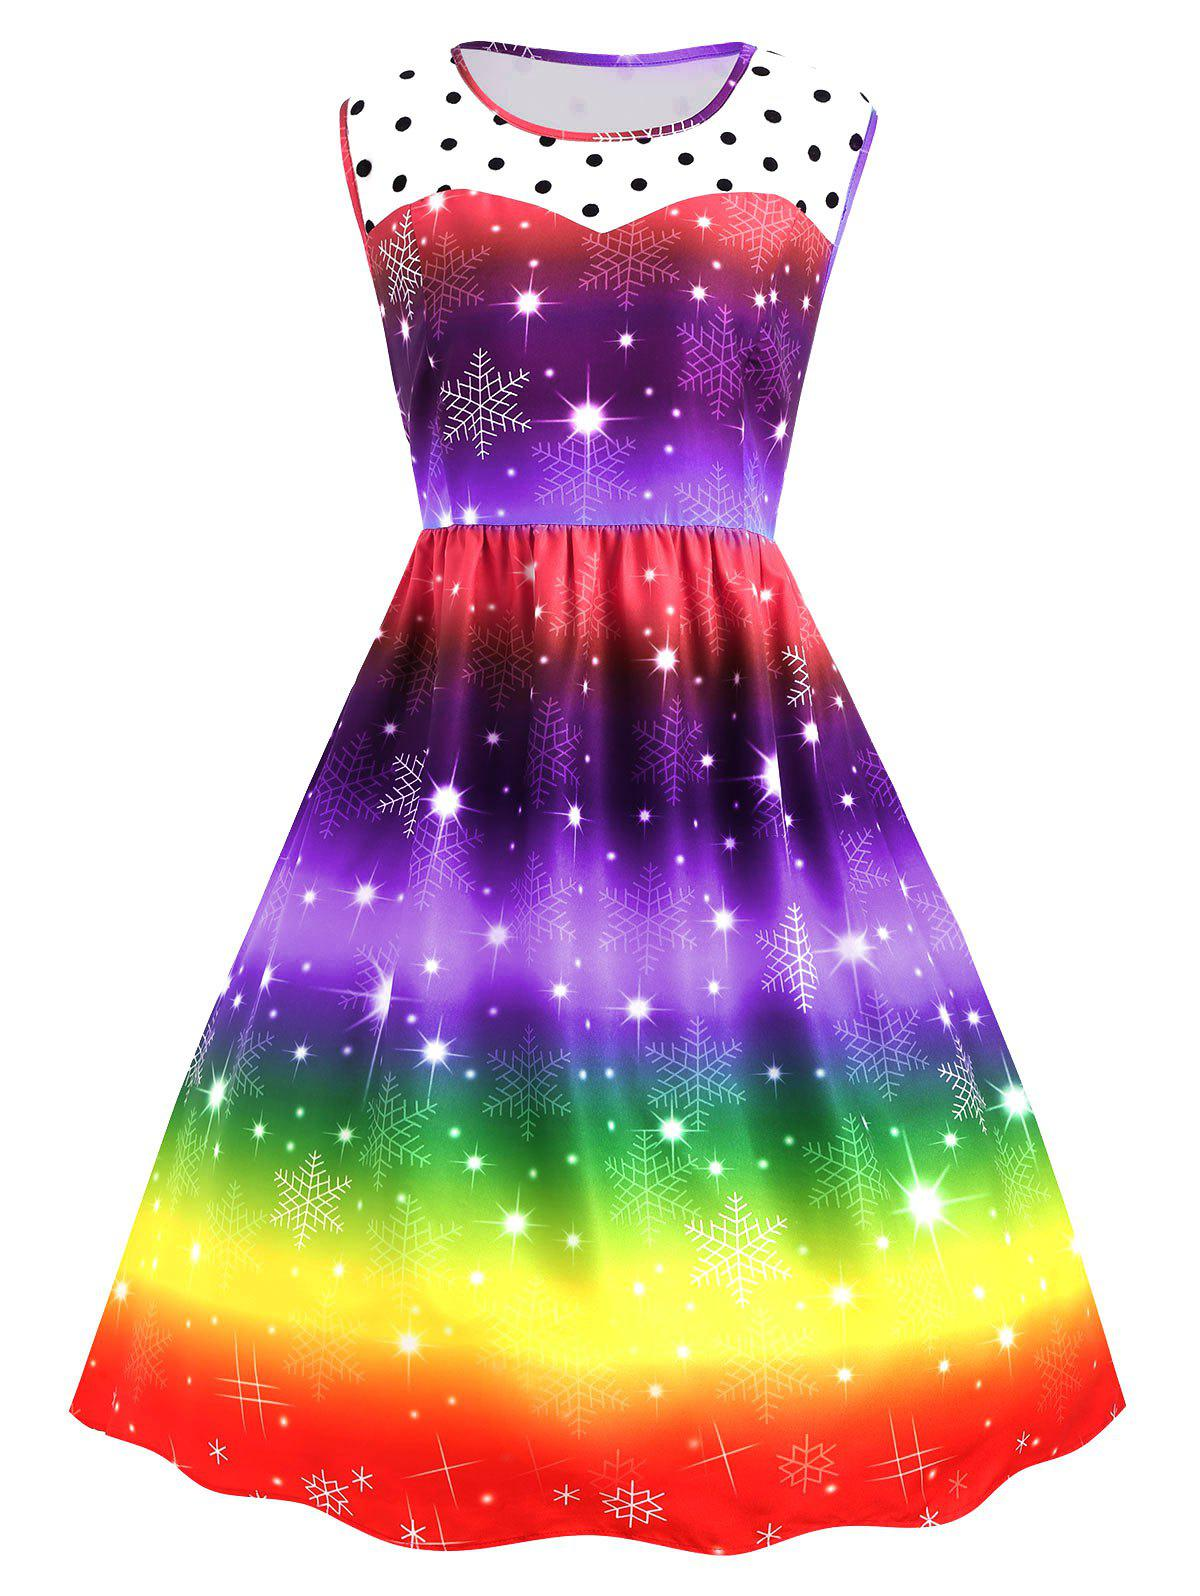 Plus Size Christmas Snowflake Rainbow Color Vintage DressWOMEN<br><br>Size: 3XL; Color: PURPLE; Style: Cute; Material: Polyester; Silhouette: Ball Gown; Dresses Length: Mid-Calf; Neckline: Round Collar; Sleeve Length: Sleeveless; Waist: High Waisted; Embellishment: Spliced; Pattern Type: Polka Dot,Print; With Belt: No; Season: Fall,Winter; Weight: 0.3300kg; Package Contents: 1 x Dress;